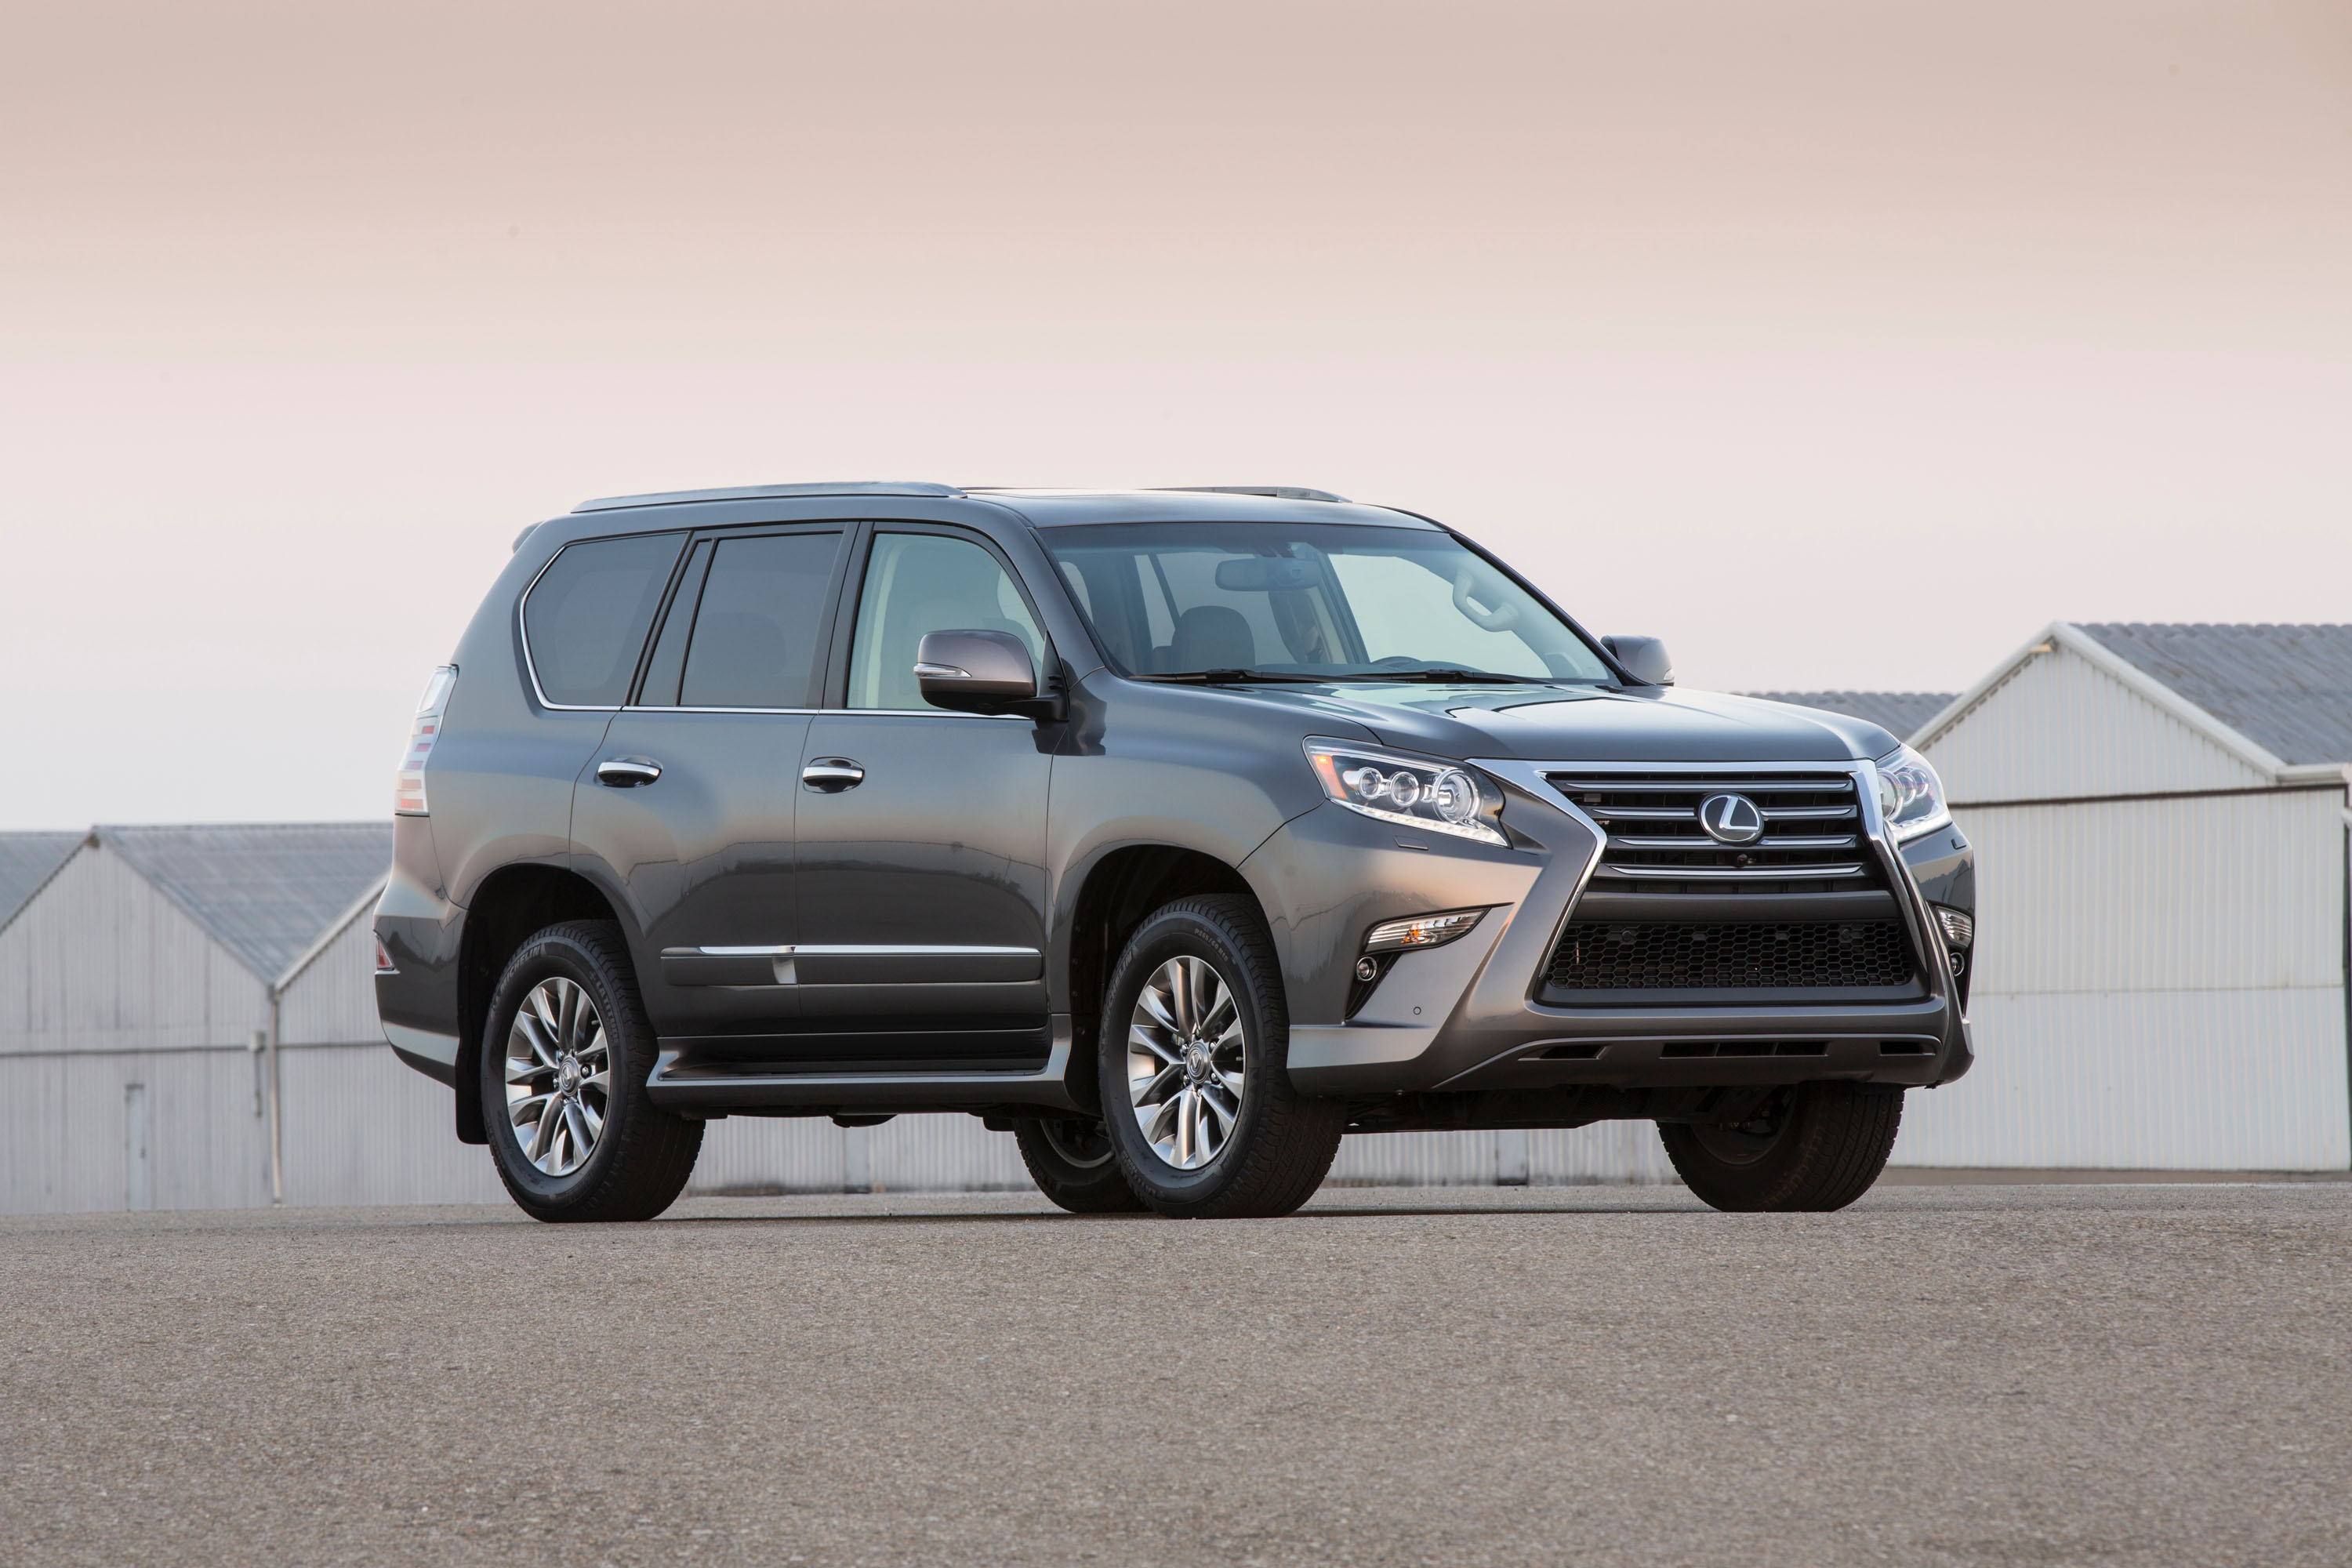 new and used lexus gx 460 prices photos reviews specs the car connection. Black Bedroom Furniture Sets. Home Design Ideas